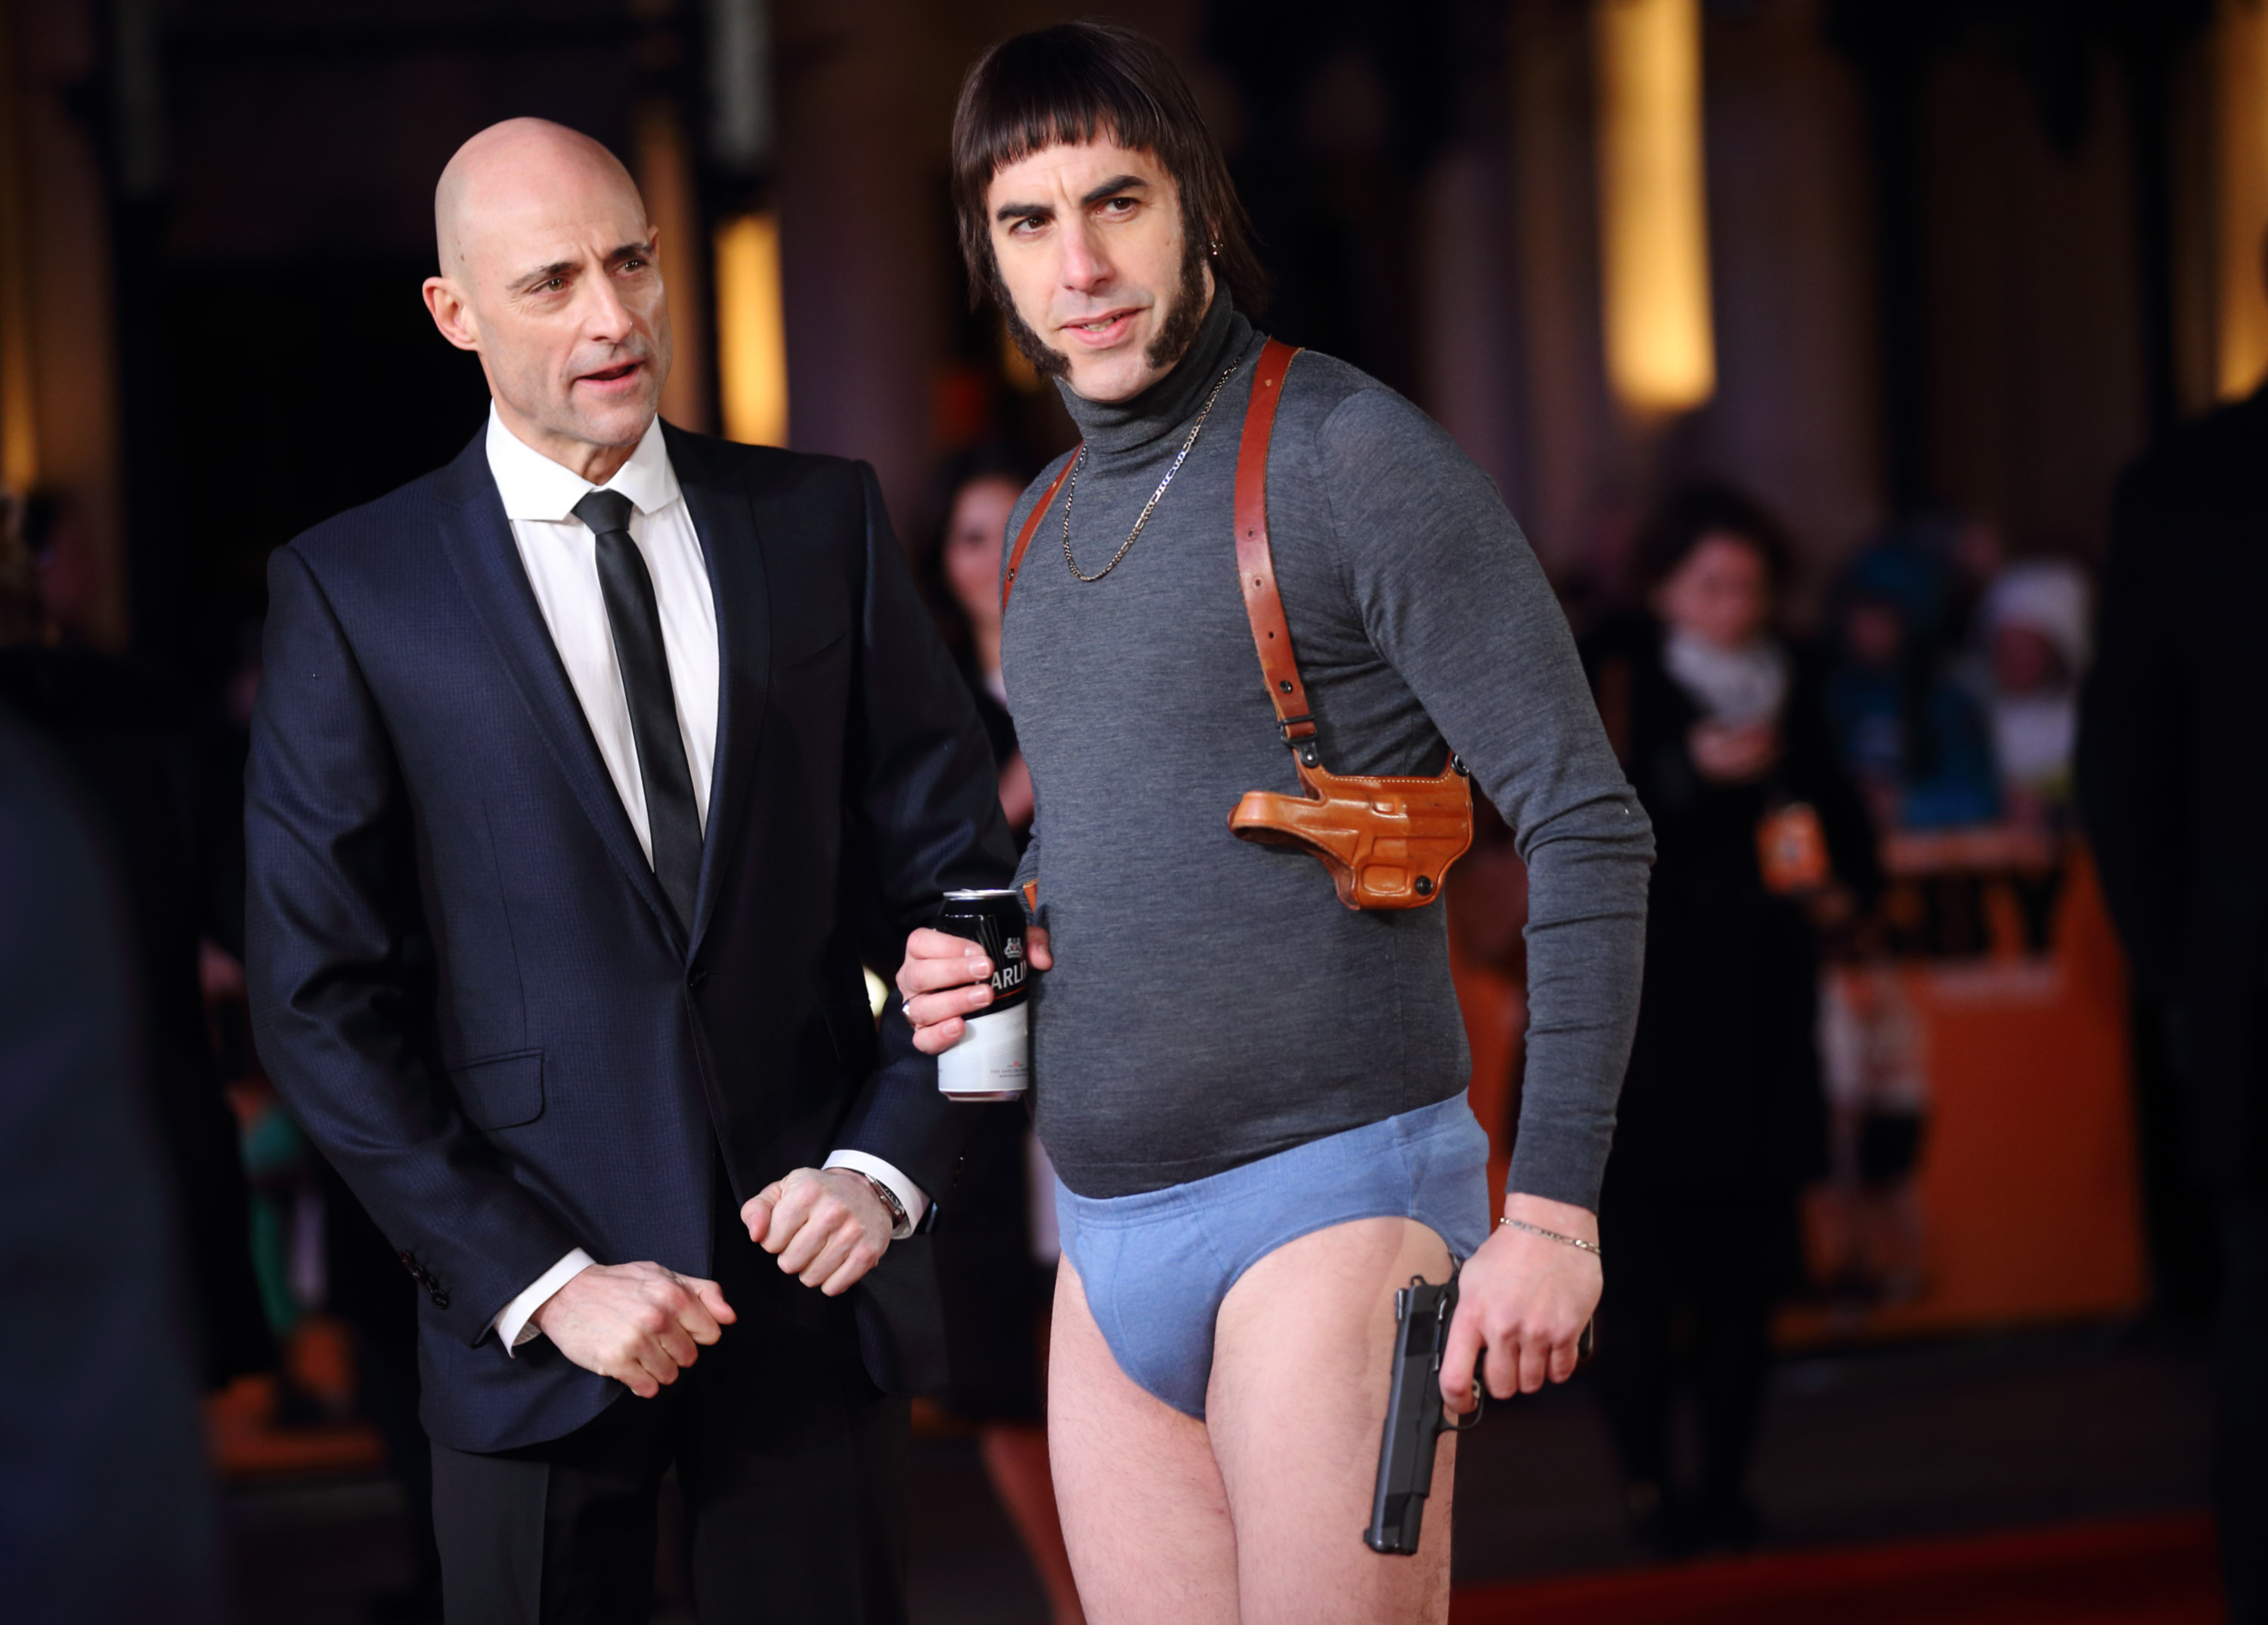 Sacha Baron Cohen takes a swipe at Oscars 'racism' at Grimsby premiere